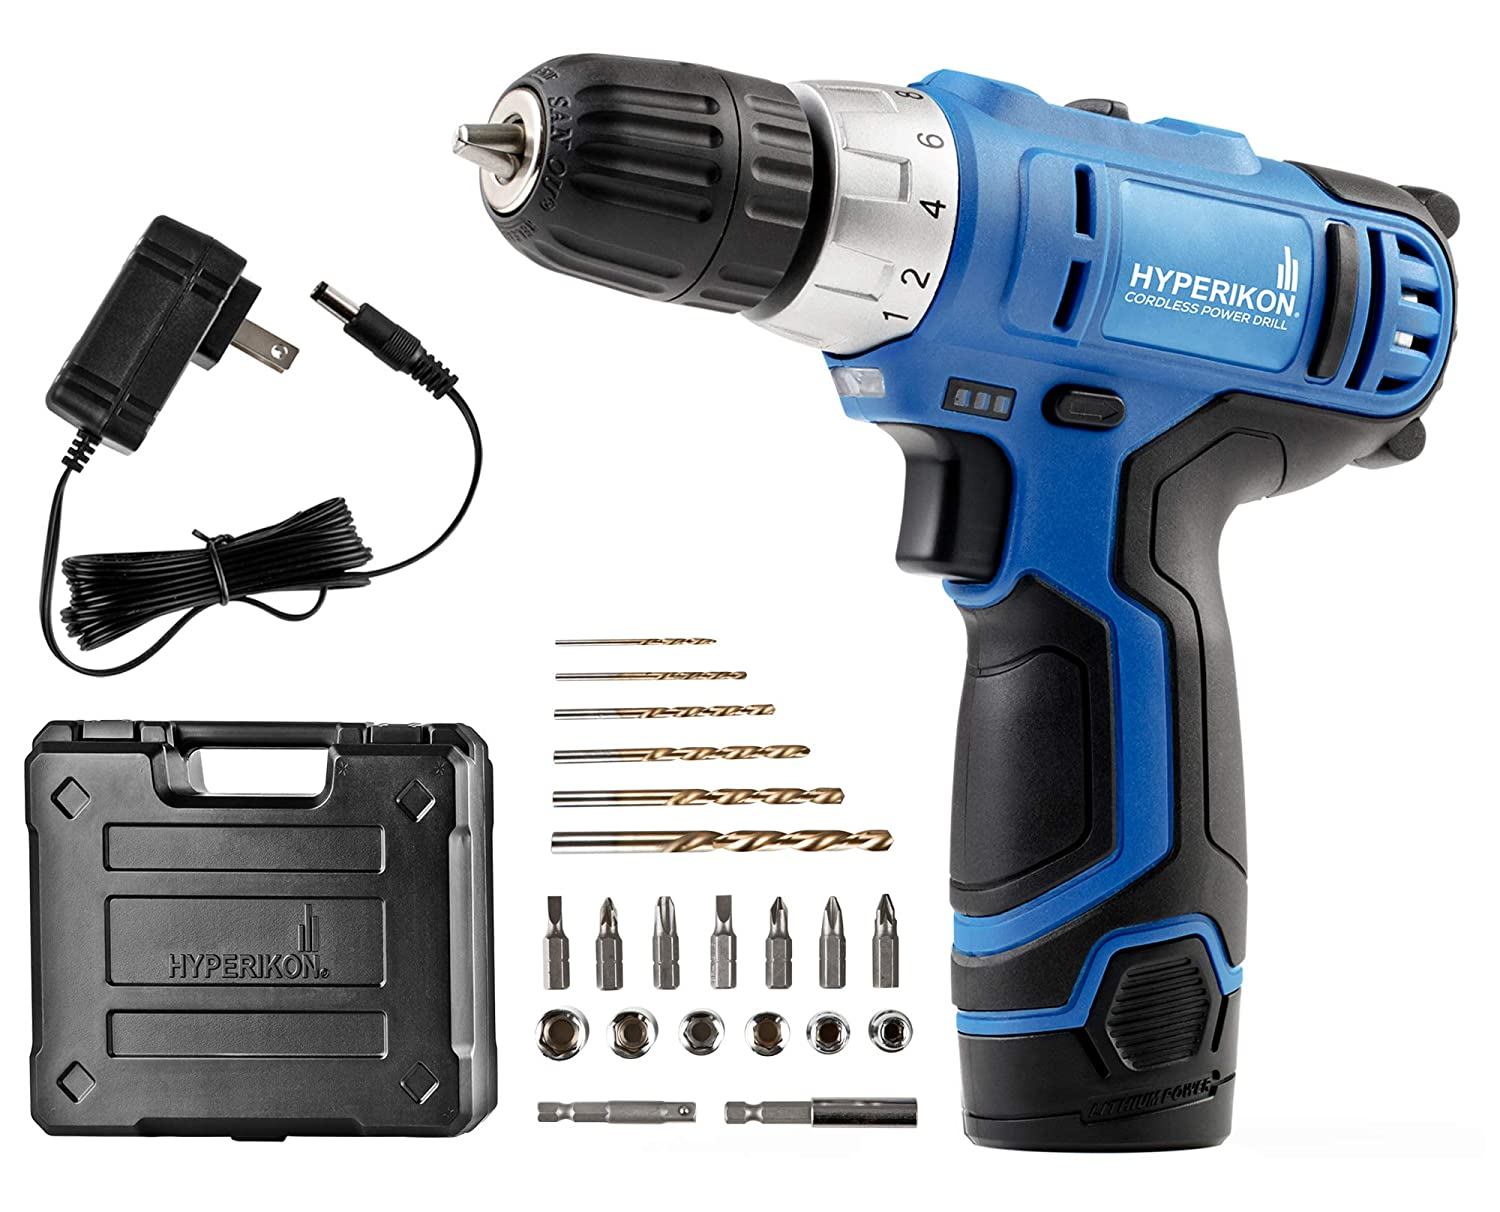 Hyperikon Electric Power Drill, 12V, 3 8 Keyless Chuck, Power Tool, Driver Set and Battery